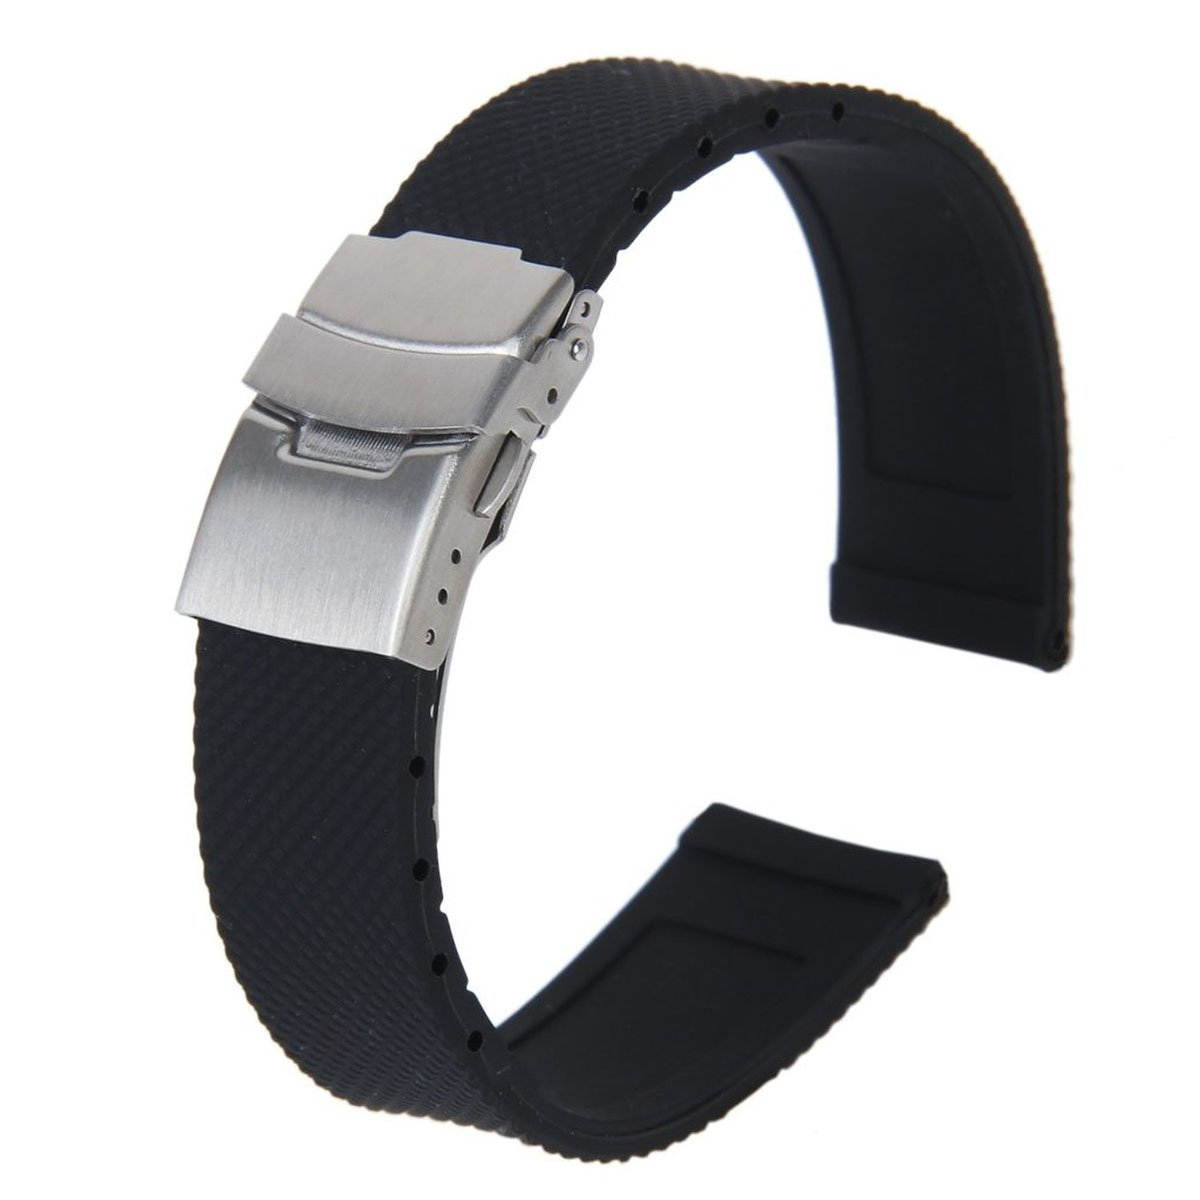 Tinksky 20mm Waterproof Silicone Watch Band Strap with Stainless Steel Deployment Clasp Buckle (Black)